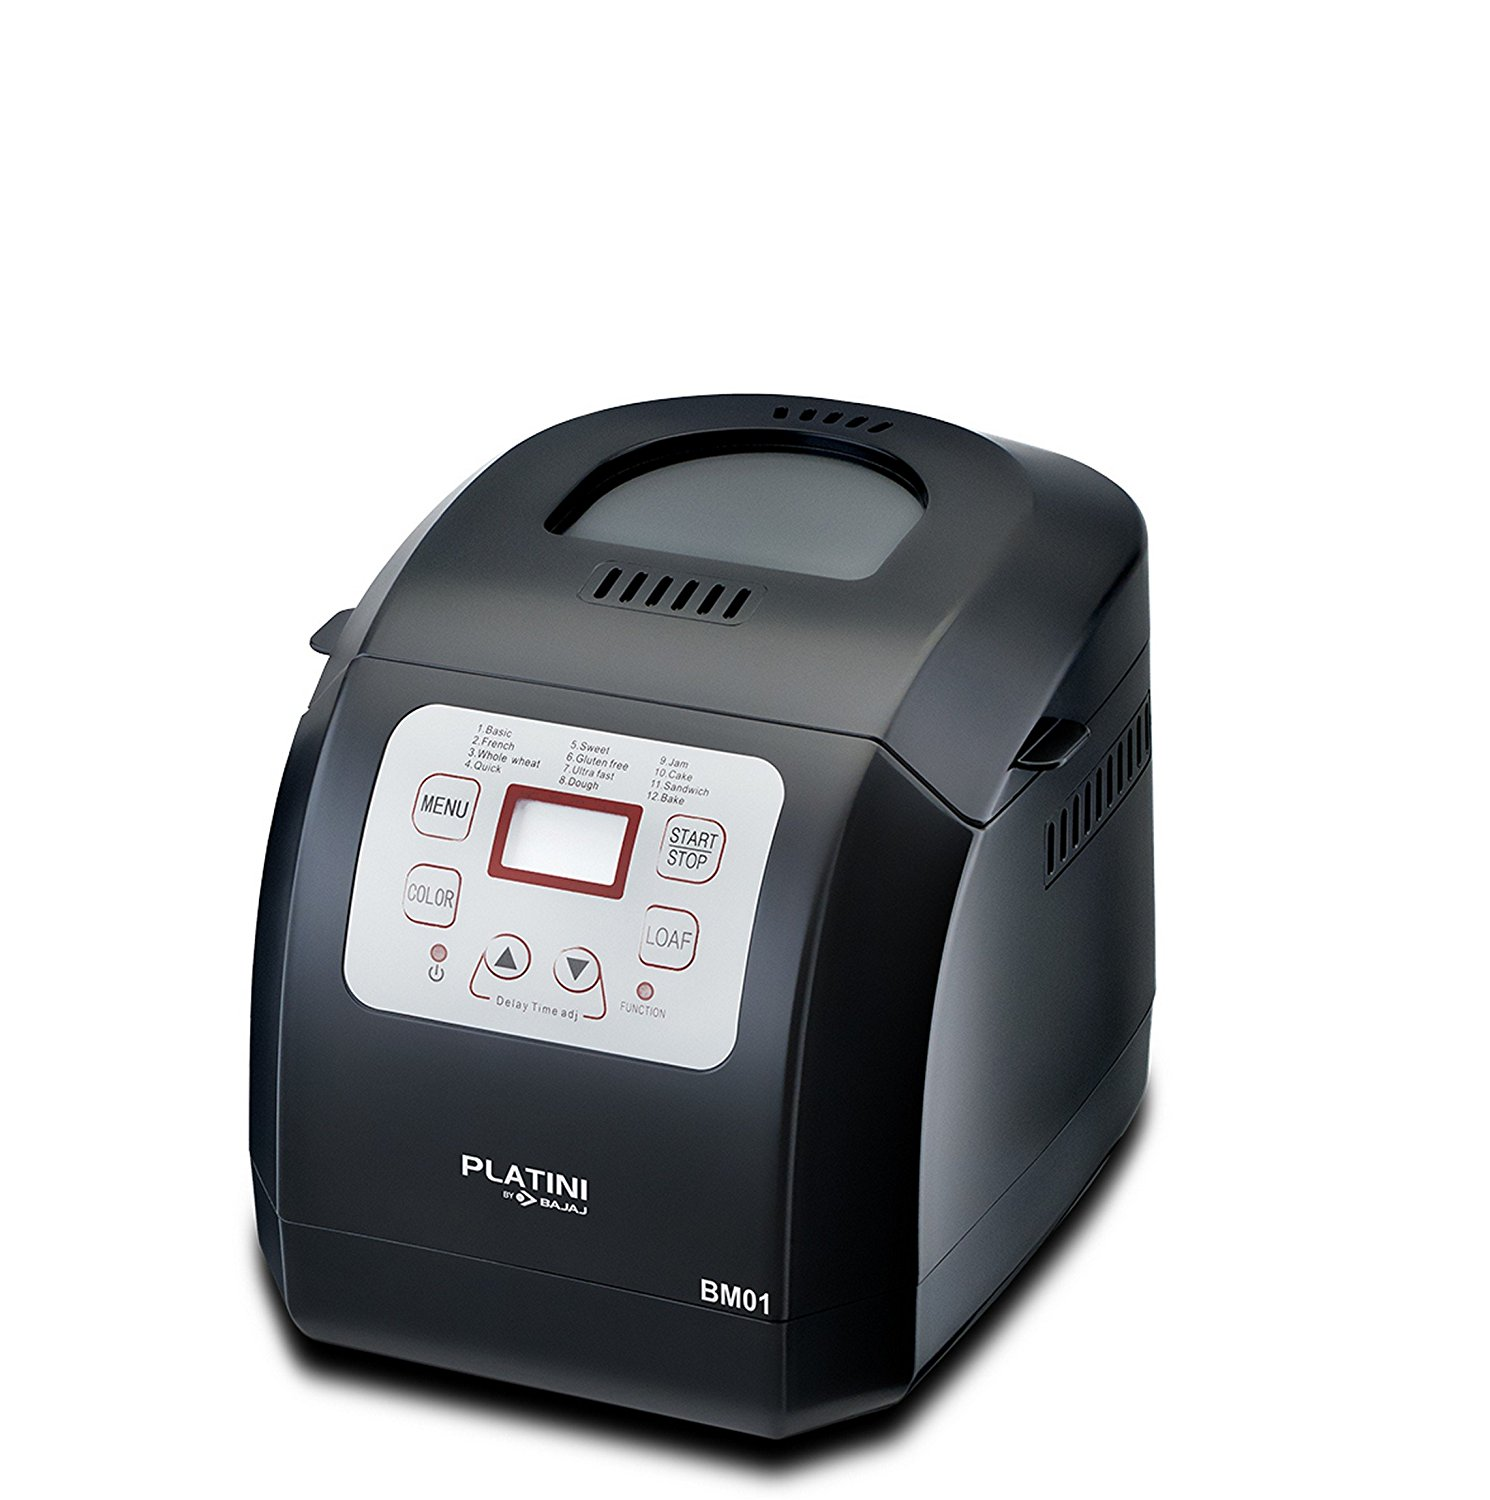 Bajaj Platini BM01 550-Watt Bread Maker